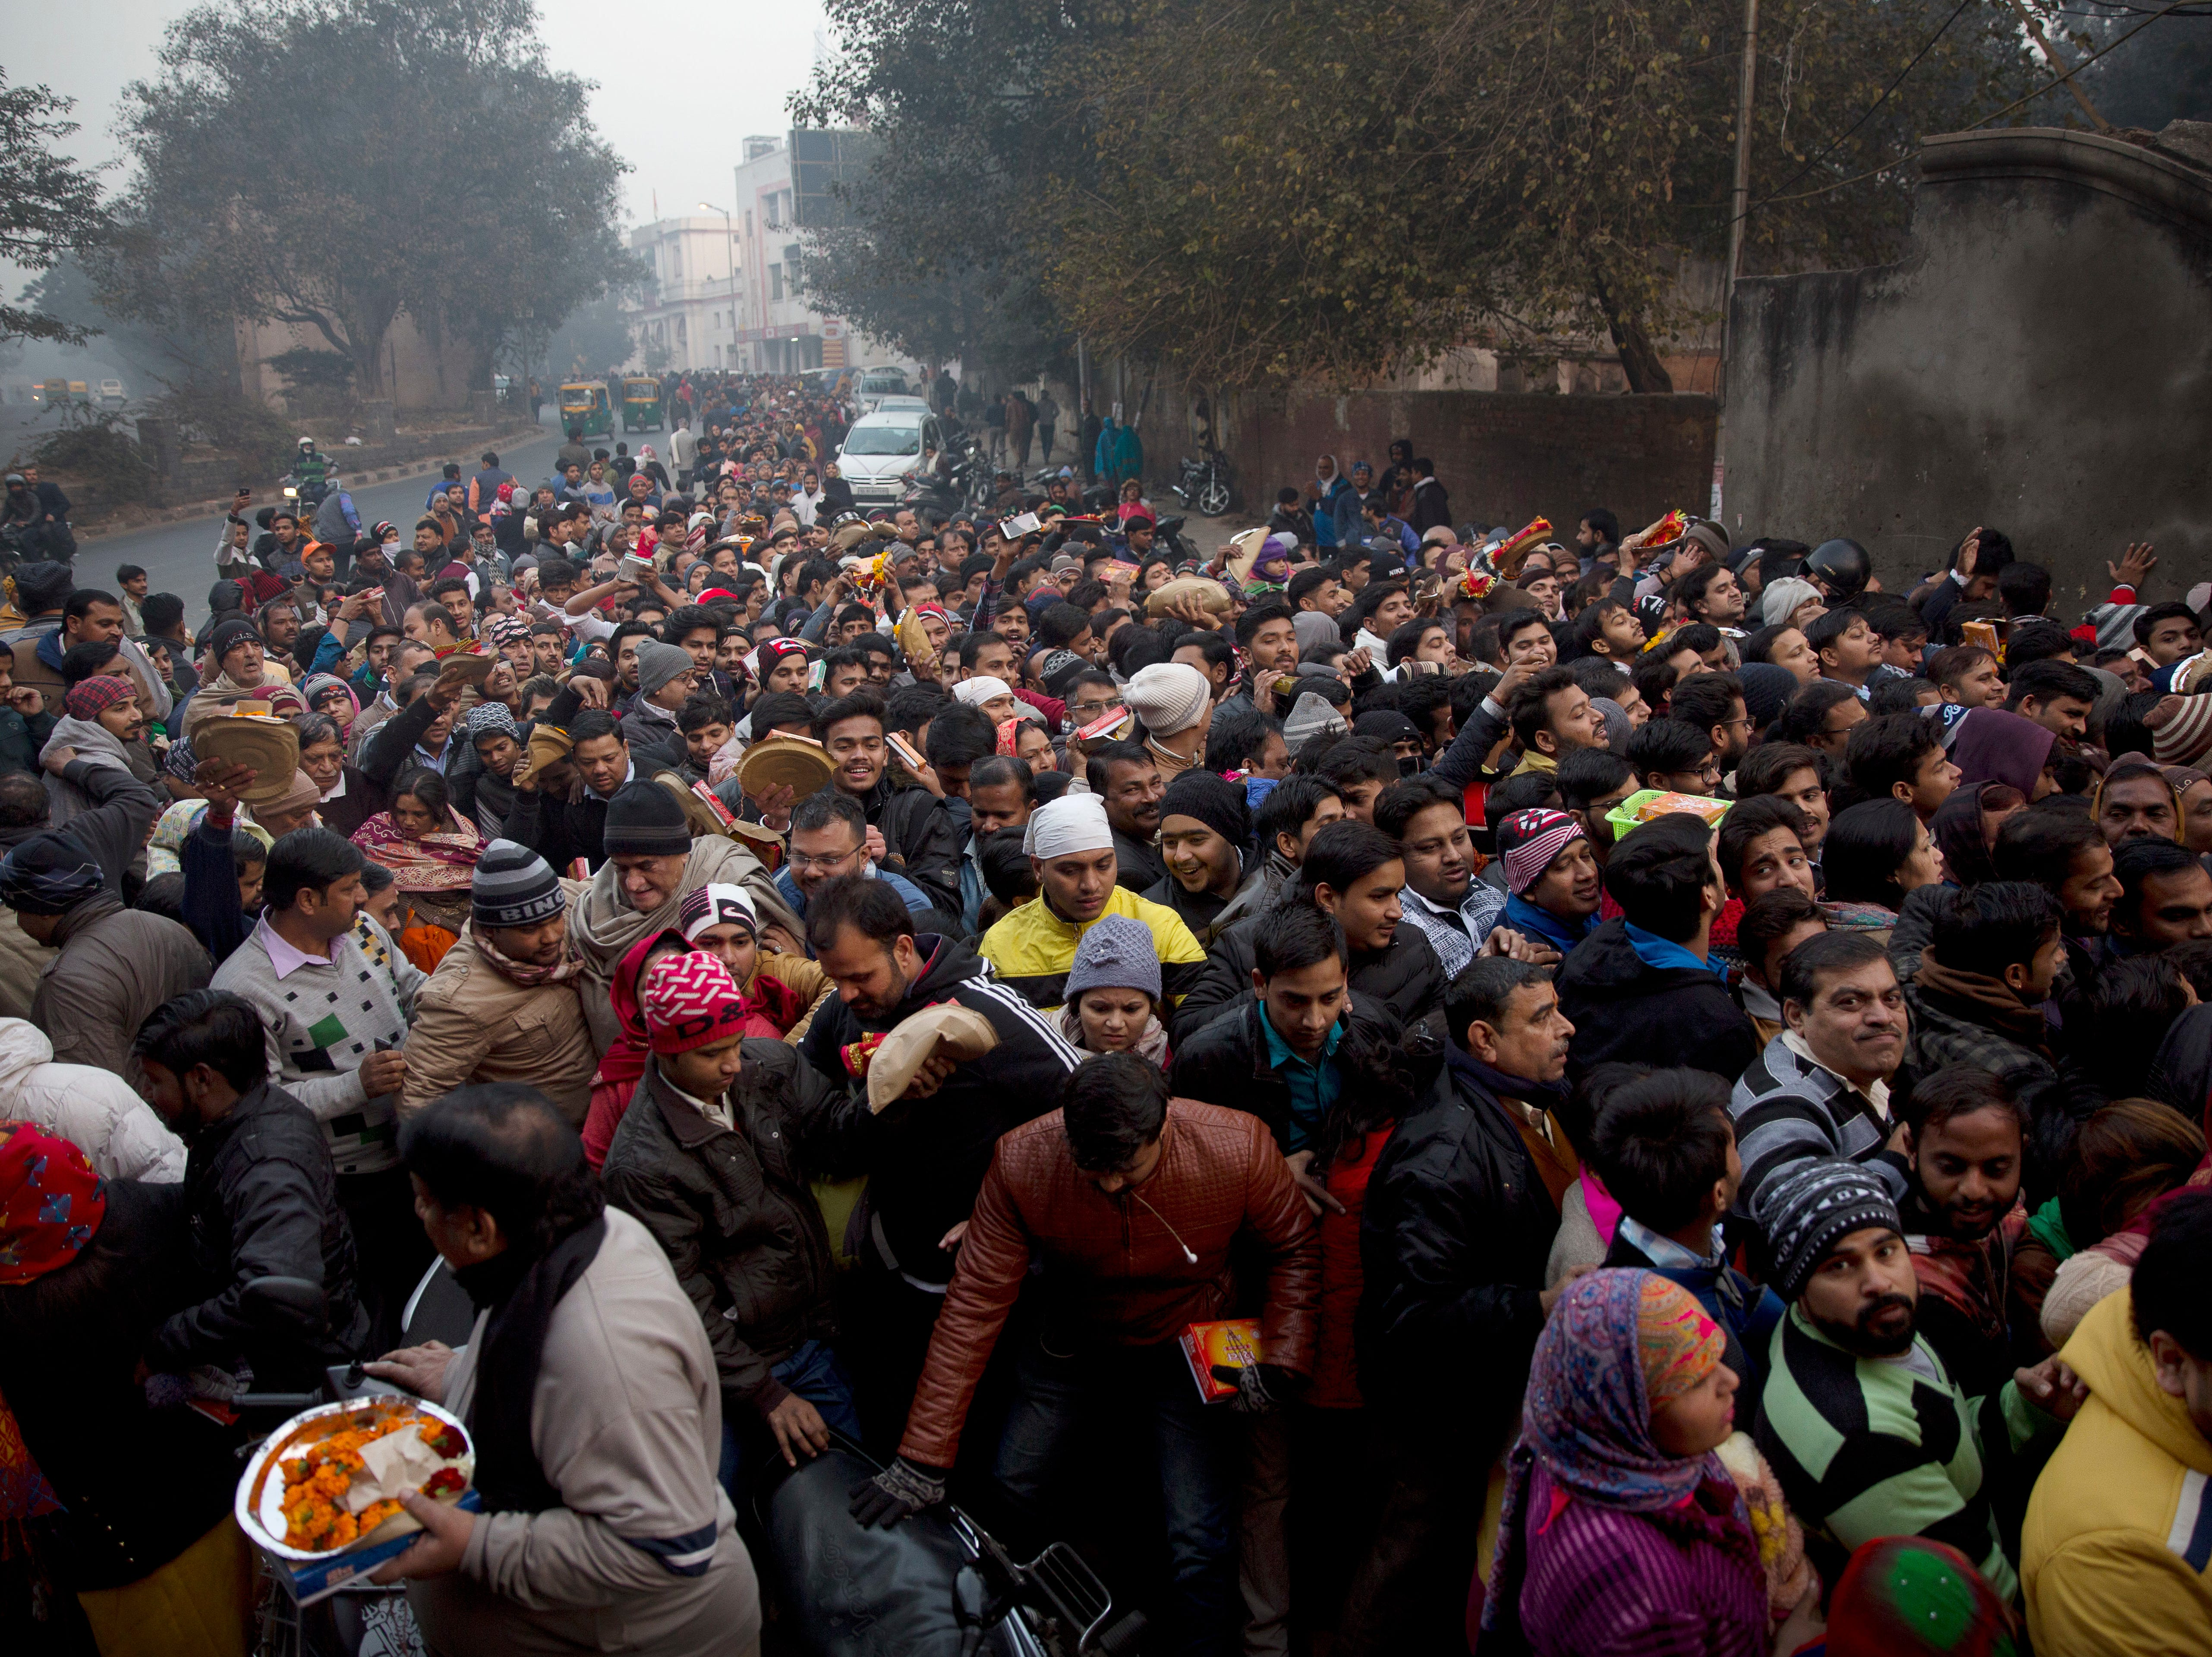 Indians throng to offer prayers in a temple on the first day of the new year in New Delhi, India, Tuesday, Jan. 1, 2019. (AP Photo/Manish Swarup) ORG XMIT: XMS102